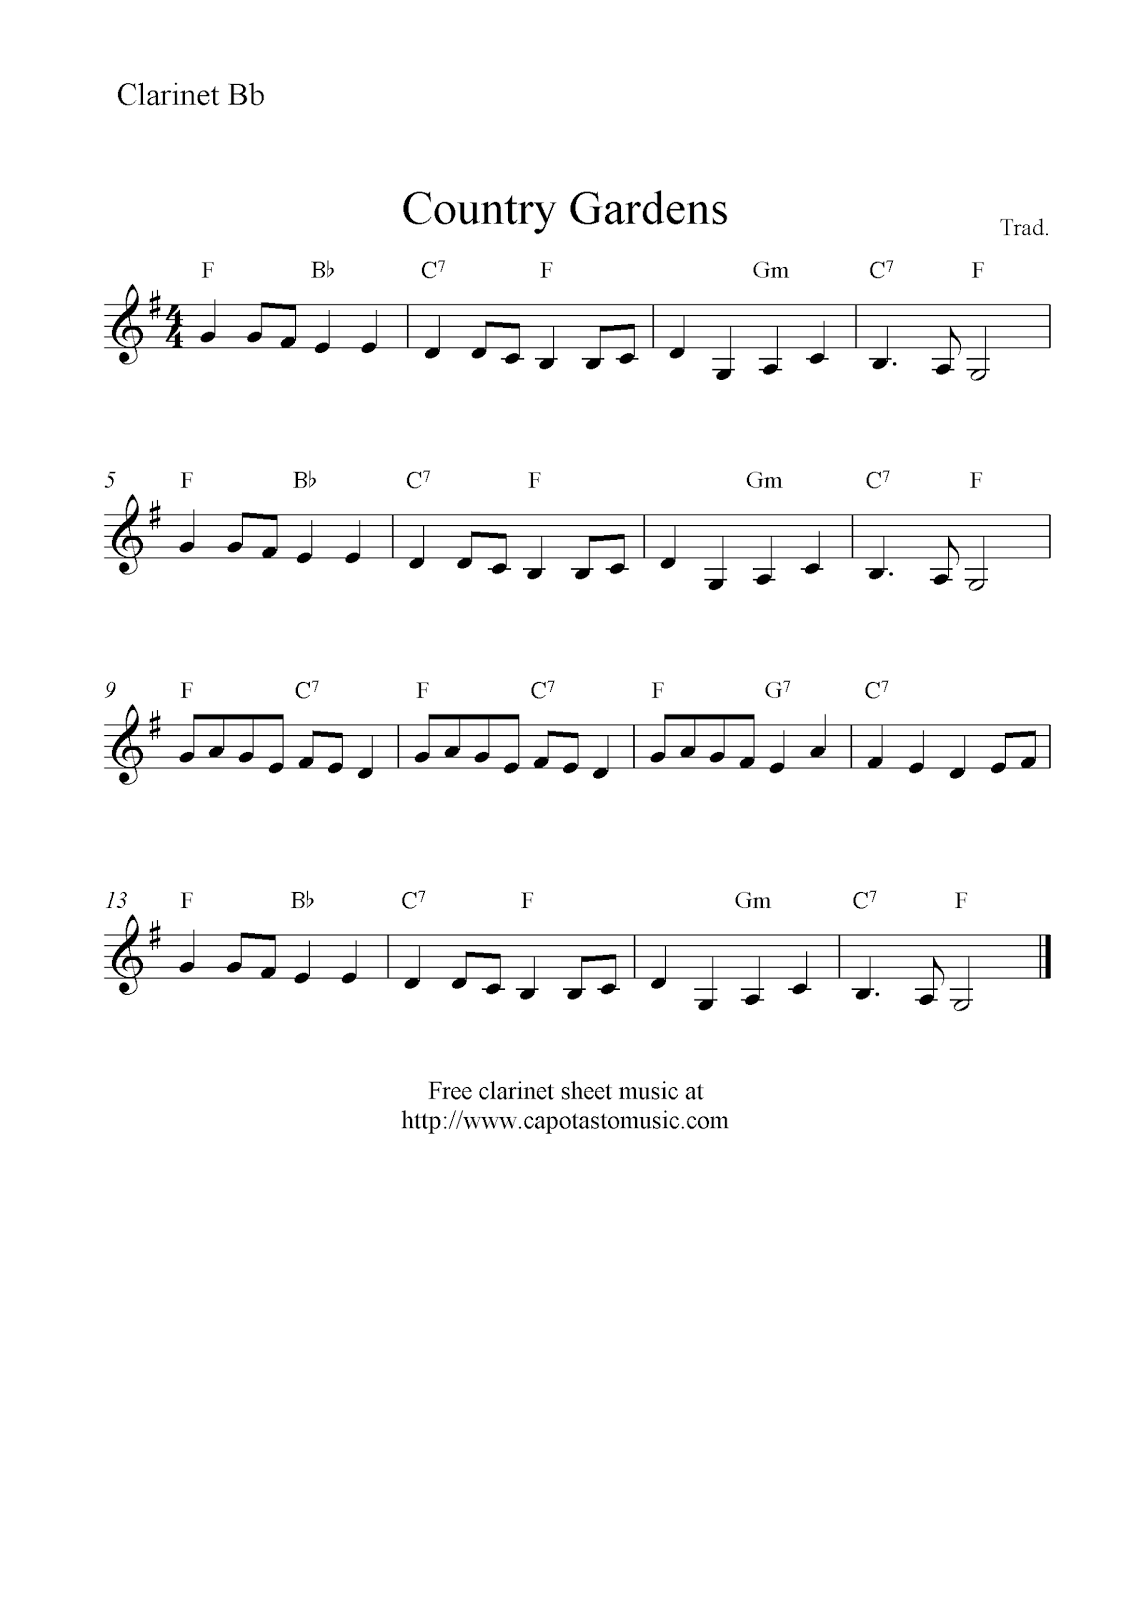 Country gardens free clarinet sheet music notes